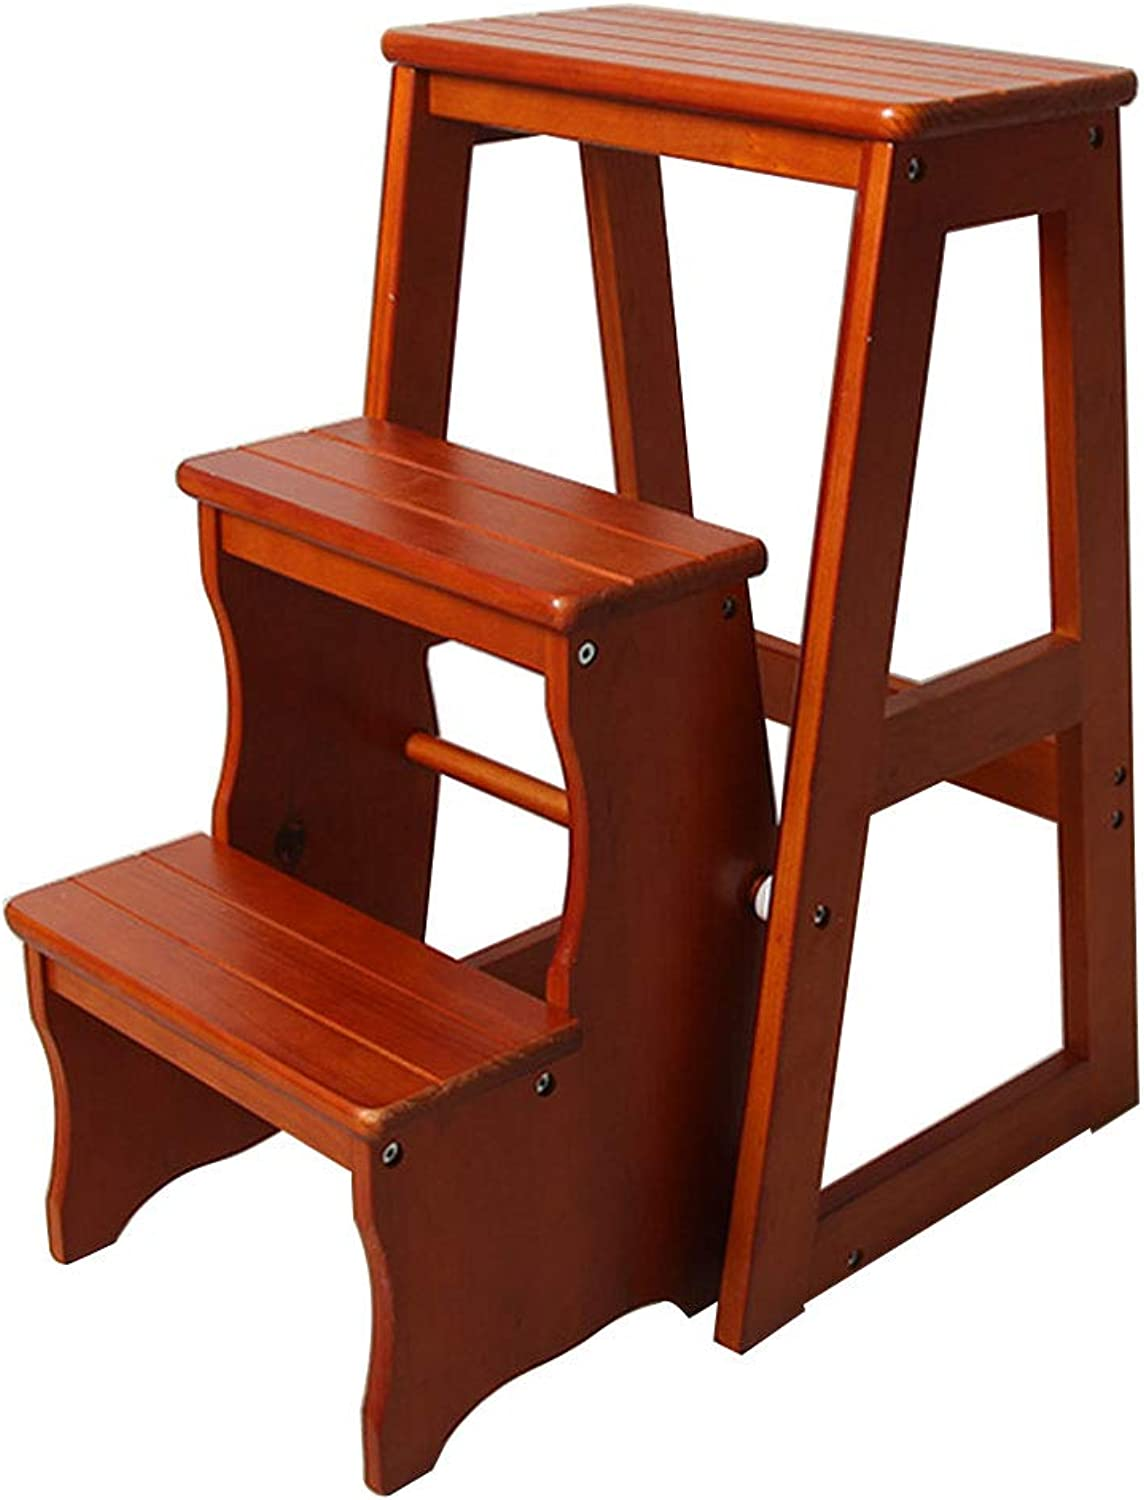 Step Stool Solid Wood Folding Chair 3 Step Stair Chair Portable Household Ladder Light Garden Tools Max Load 150KG (color Light Walnut)